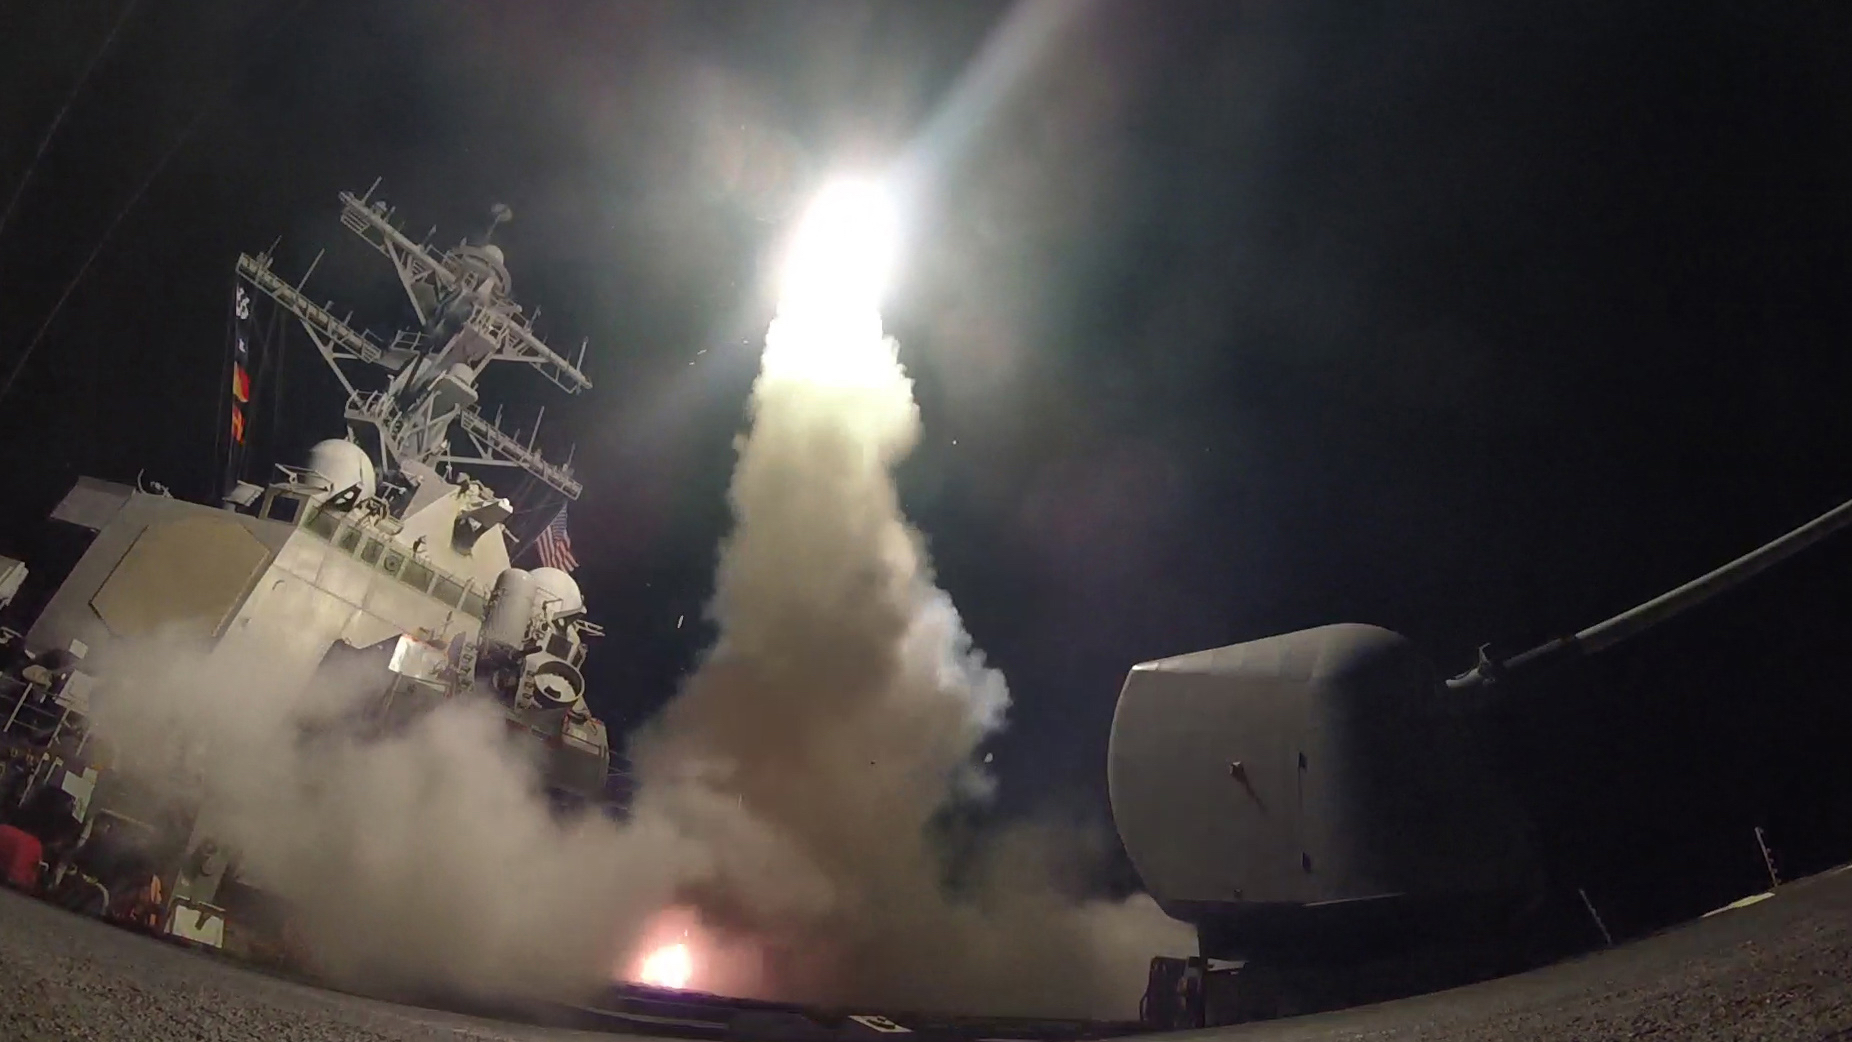 The guided-missile destroyer USS Porter (DDG 78) conducts strike operations while in the Mediterranean Sea, April 7, 2017. Porter, forward-deployed to Rota, Spain, is conducting naval operations in the U.S. 6th Fleet area of operations in support of U.S. national security interests in Europe. (U.S. Navy photo by Mass Communication Specialist 3rd Class Ford Williams/Released)